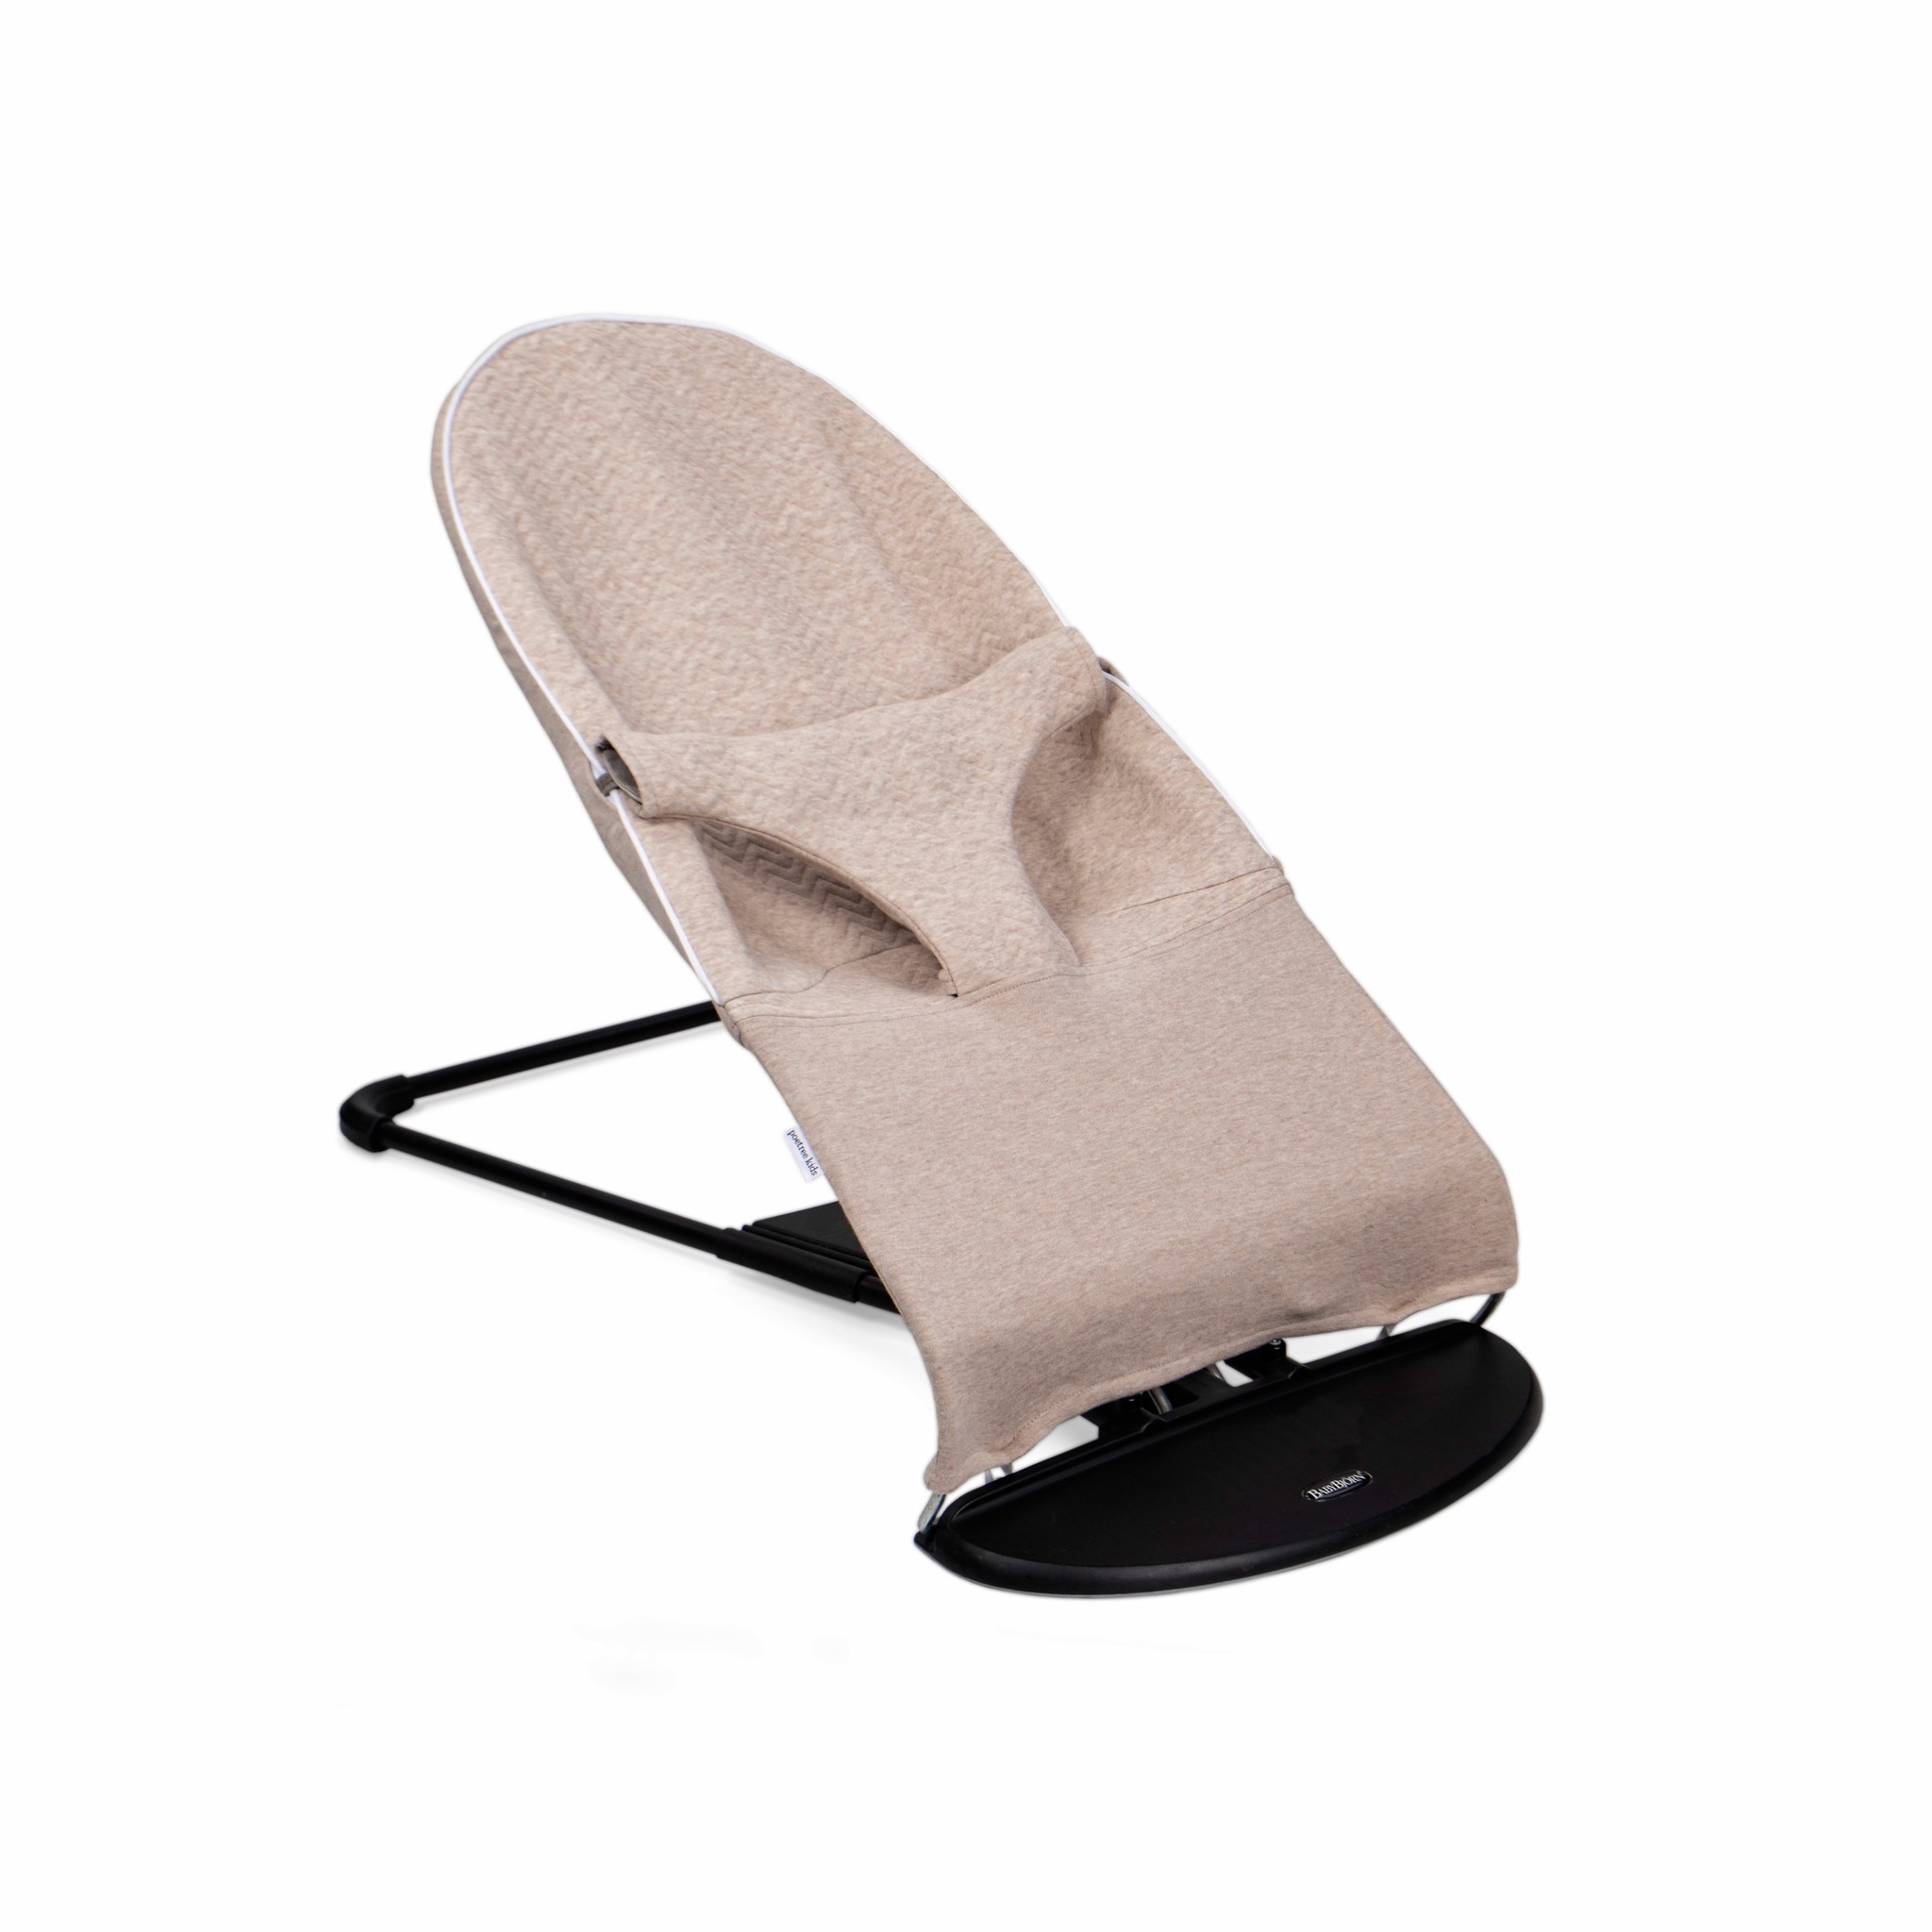 Protective cover for the BabyBjörn bouncer Chevron Light Camel-1